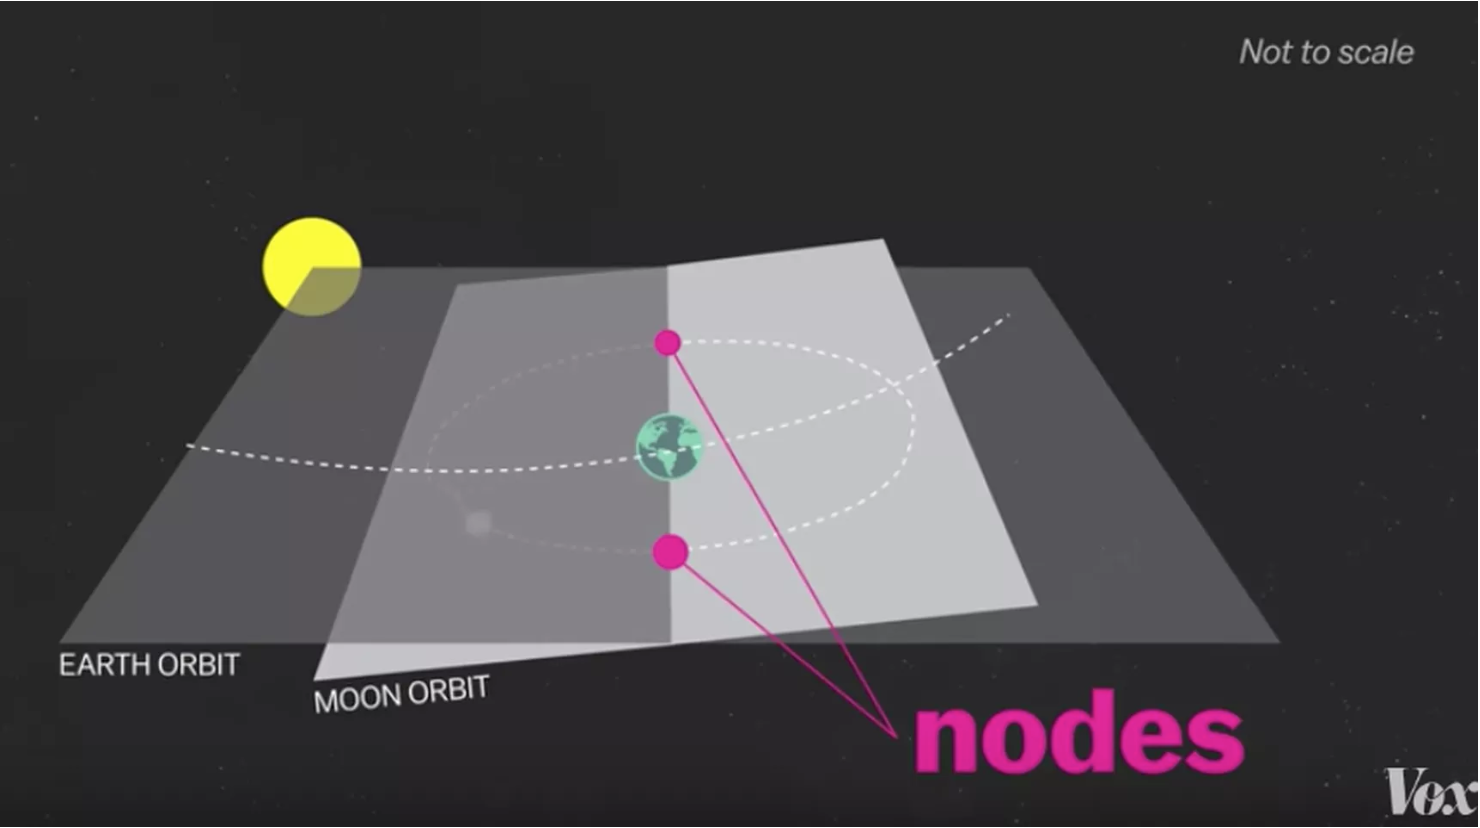 It's all about the nodes